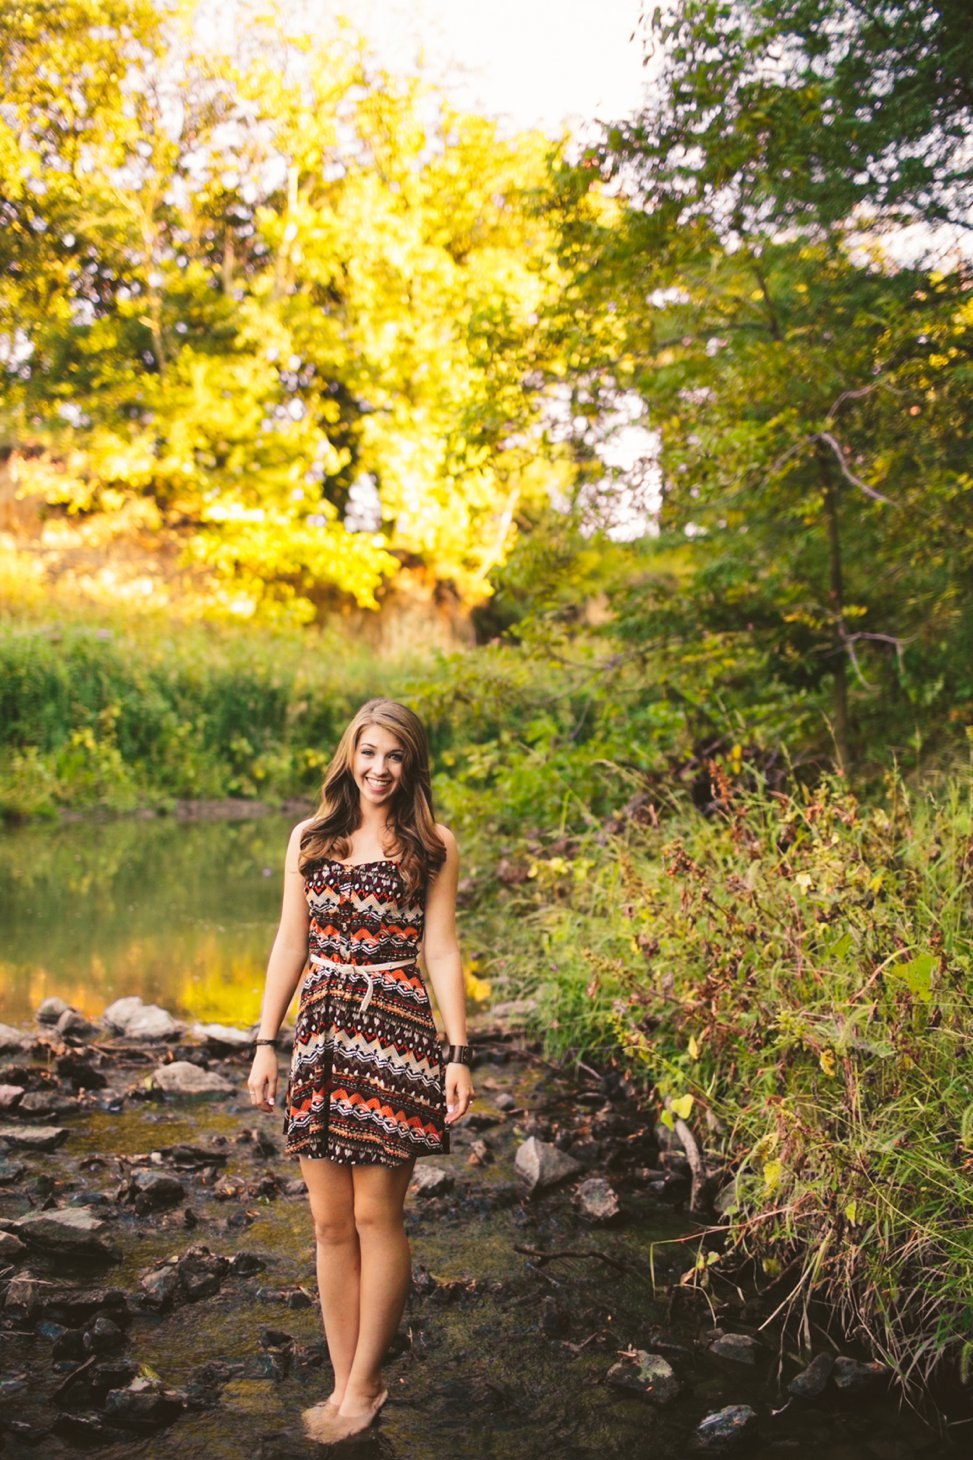 elyssa wyn wiley photography_586